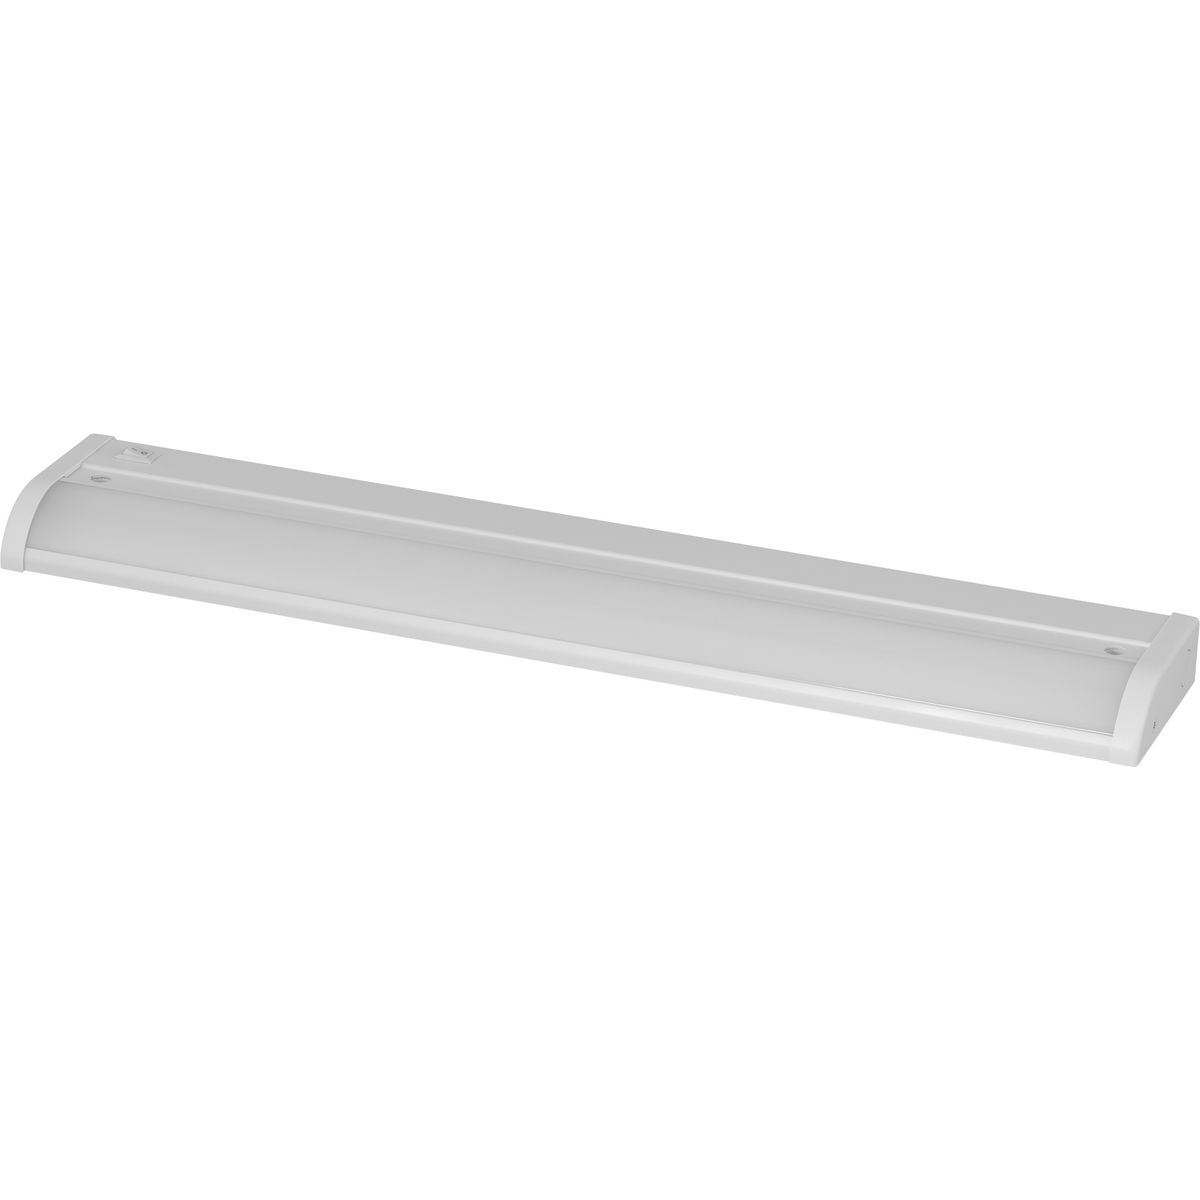 18IN LED UNDERCABINET White